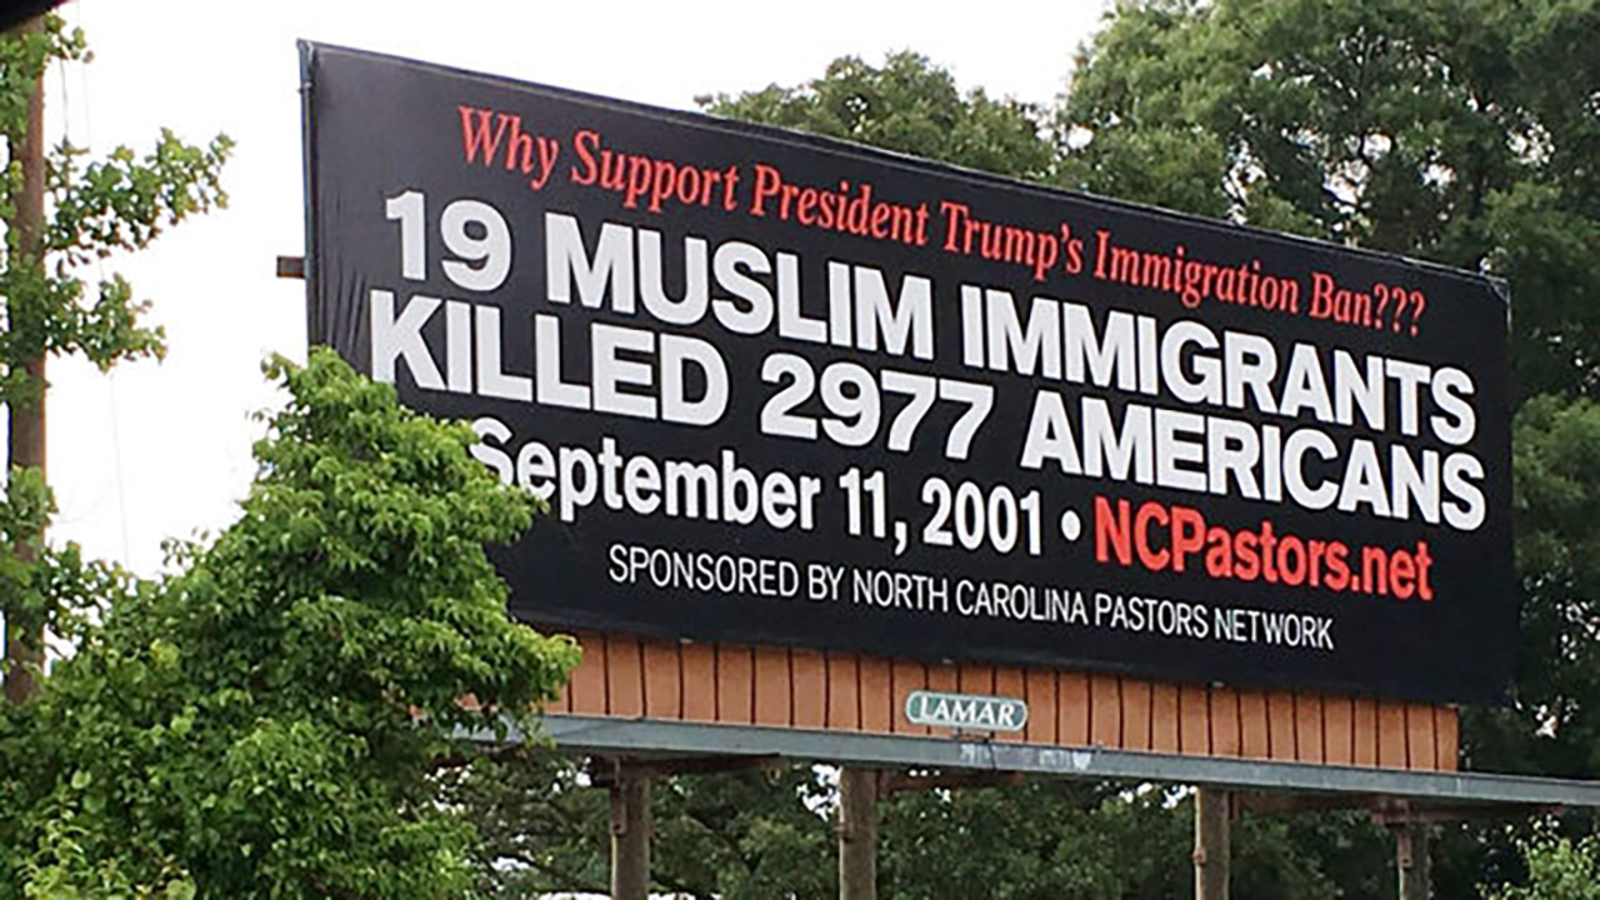 Religious group's controversial billboard along I-40 sparks debate | abc11.com